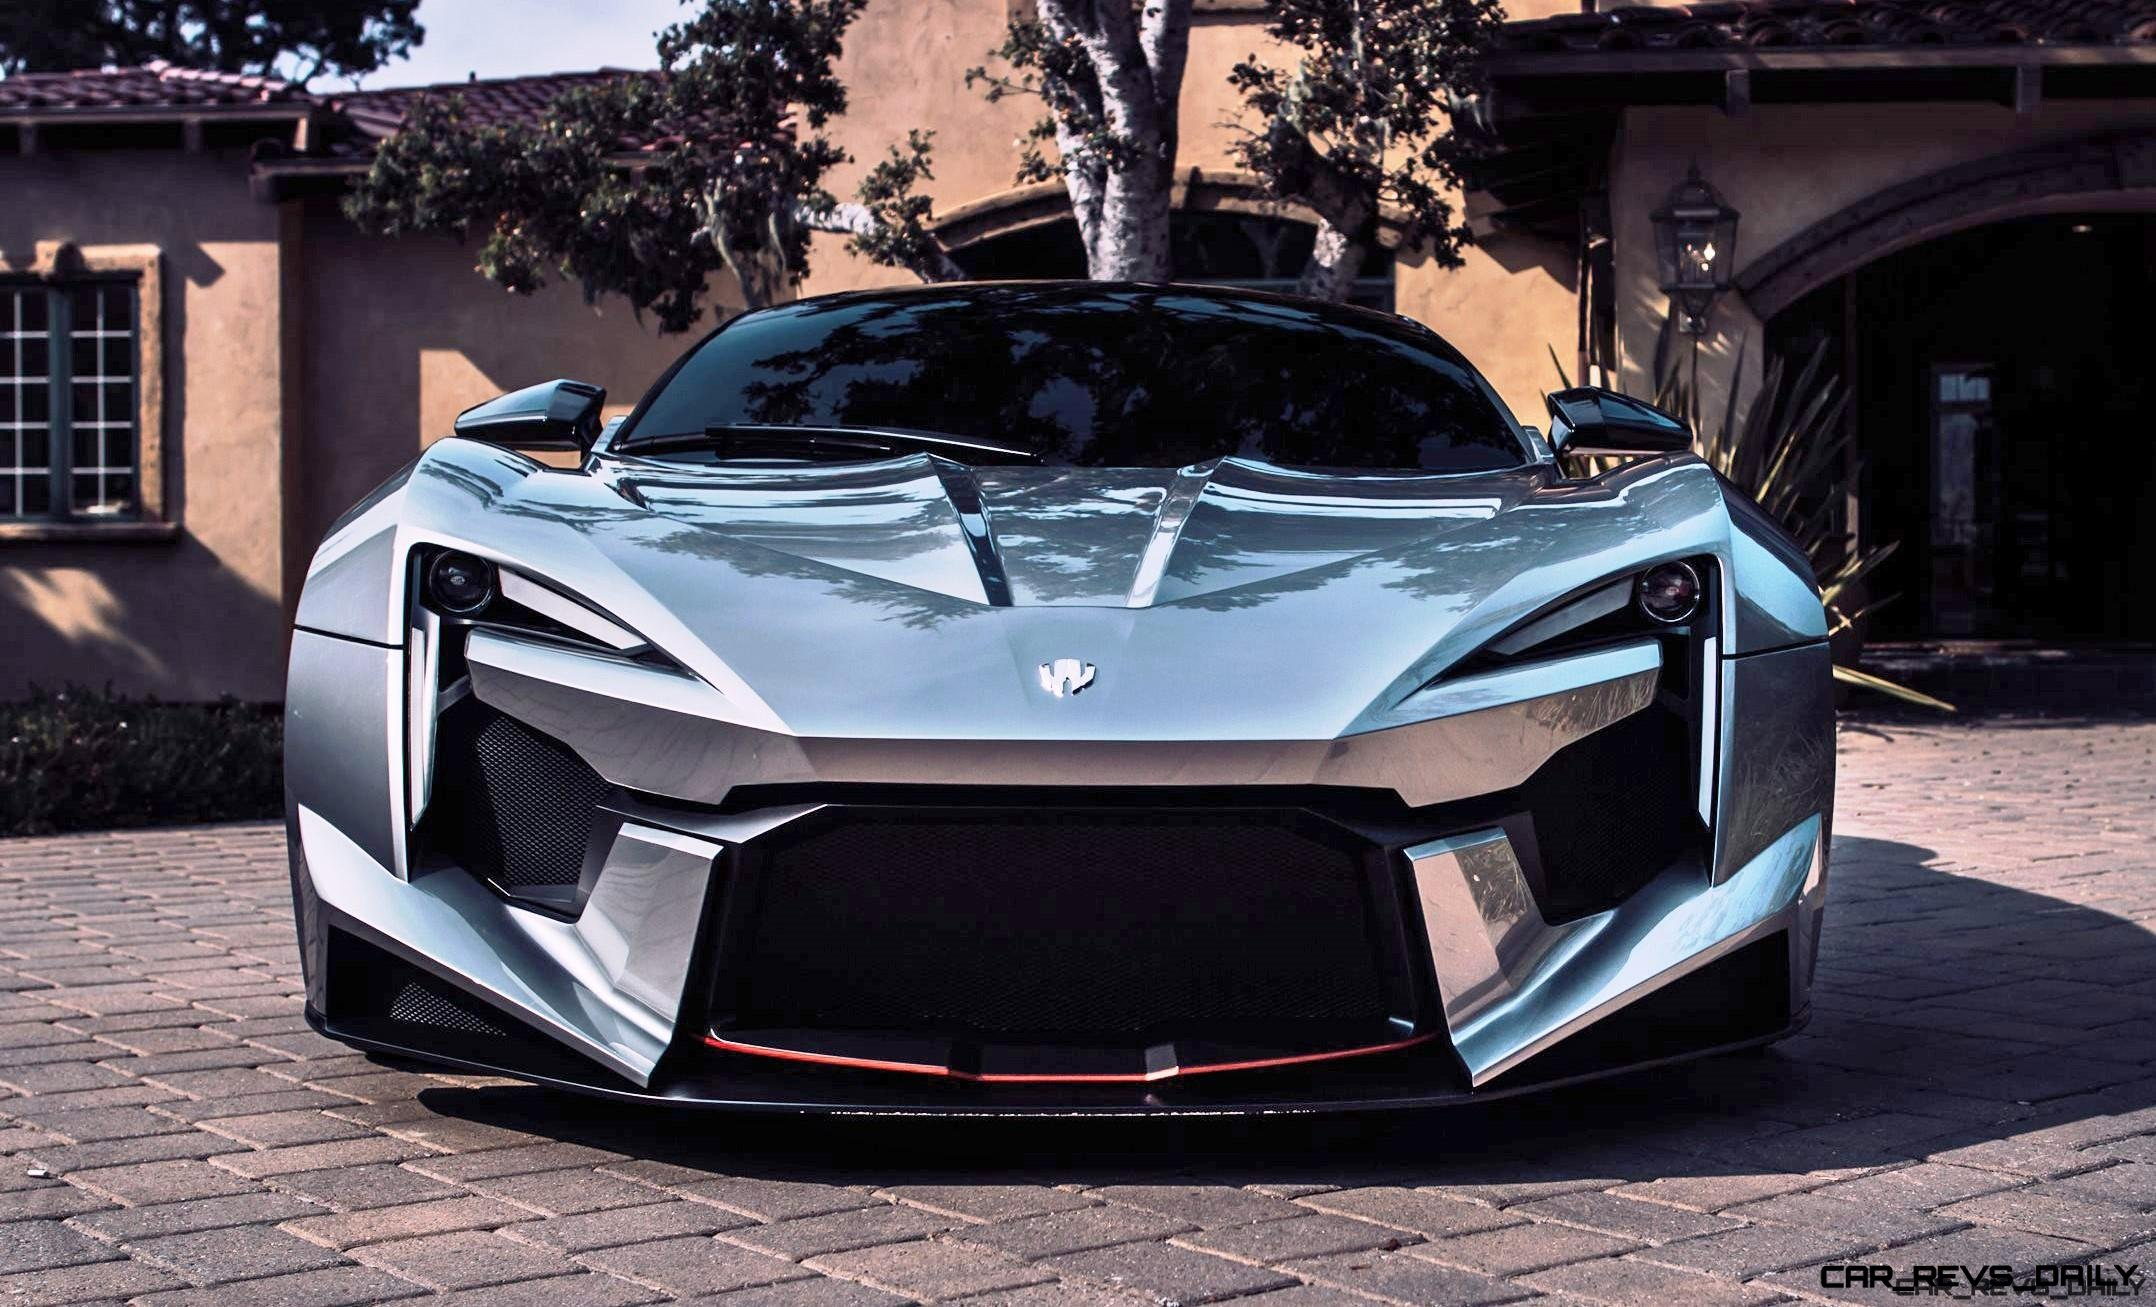 2017 w motors fenyr supersport in near production form for shanghai. Black Bedroom Furniture Sets. Home Design Ideas